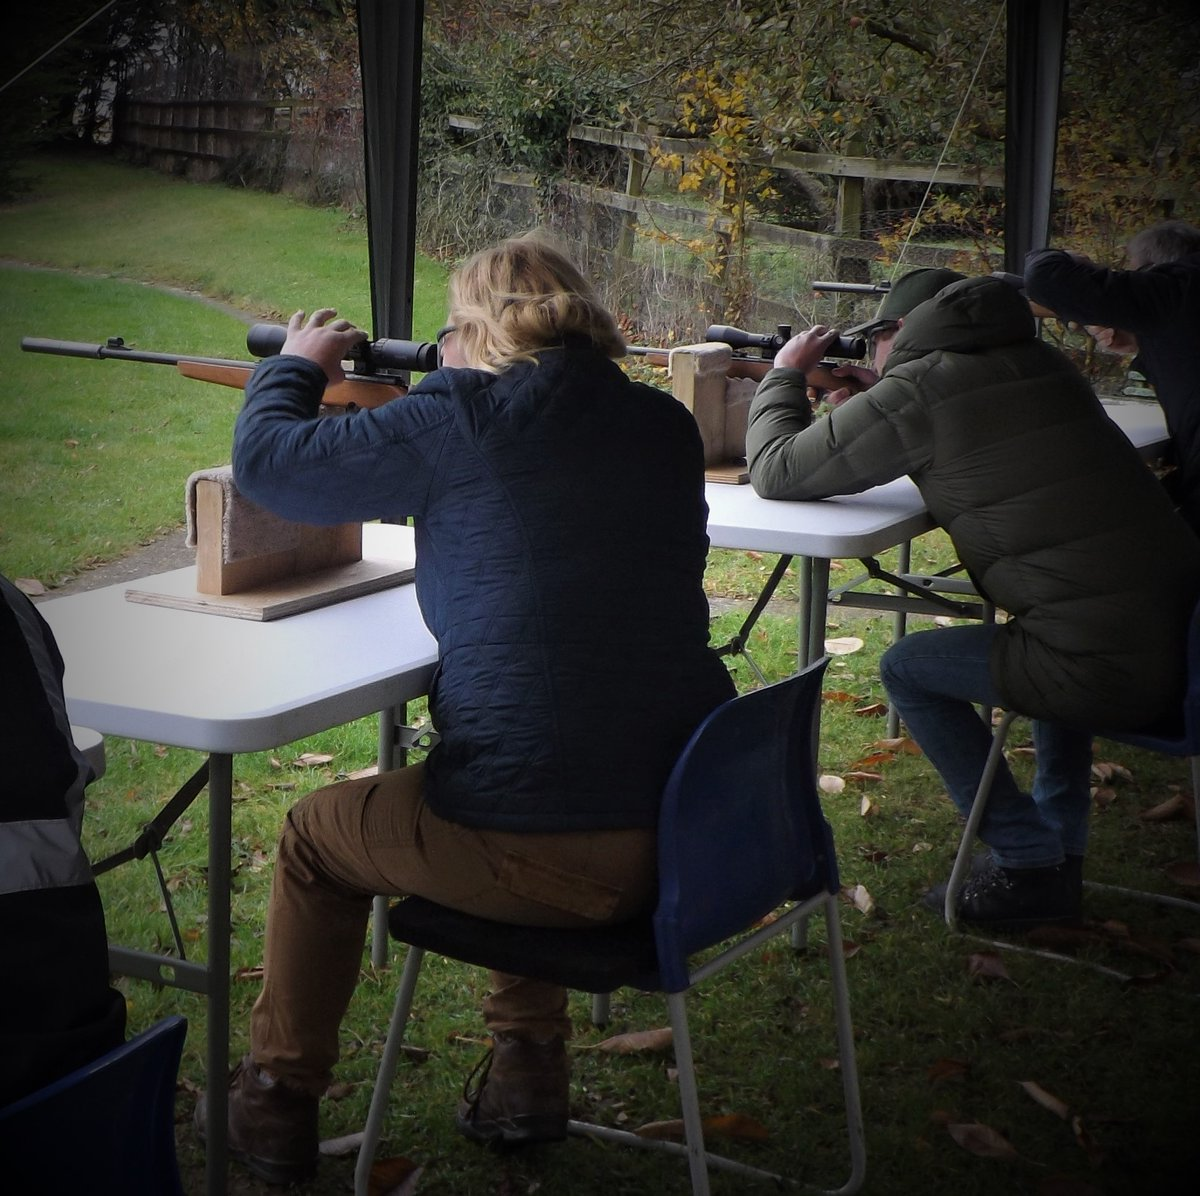 Start Now! Introduction to Rifle Target Shooting 24/01/20 #skillatarms #vyv #vyvyan #love #instagood #photooftheday #tbt #cute #beautiful #me #followme #happy #follow #fashion #selfie #picoftheday #like4like #girl #tagsforlikes #instadaily #friends #summer #fun #smile #igers